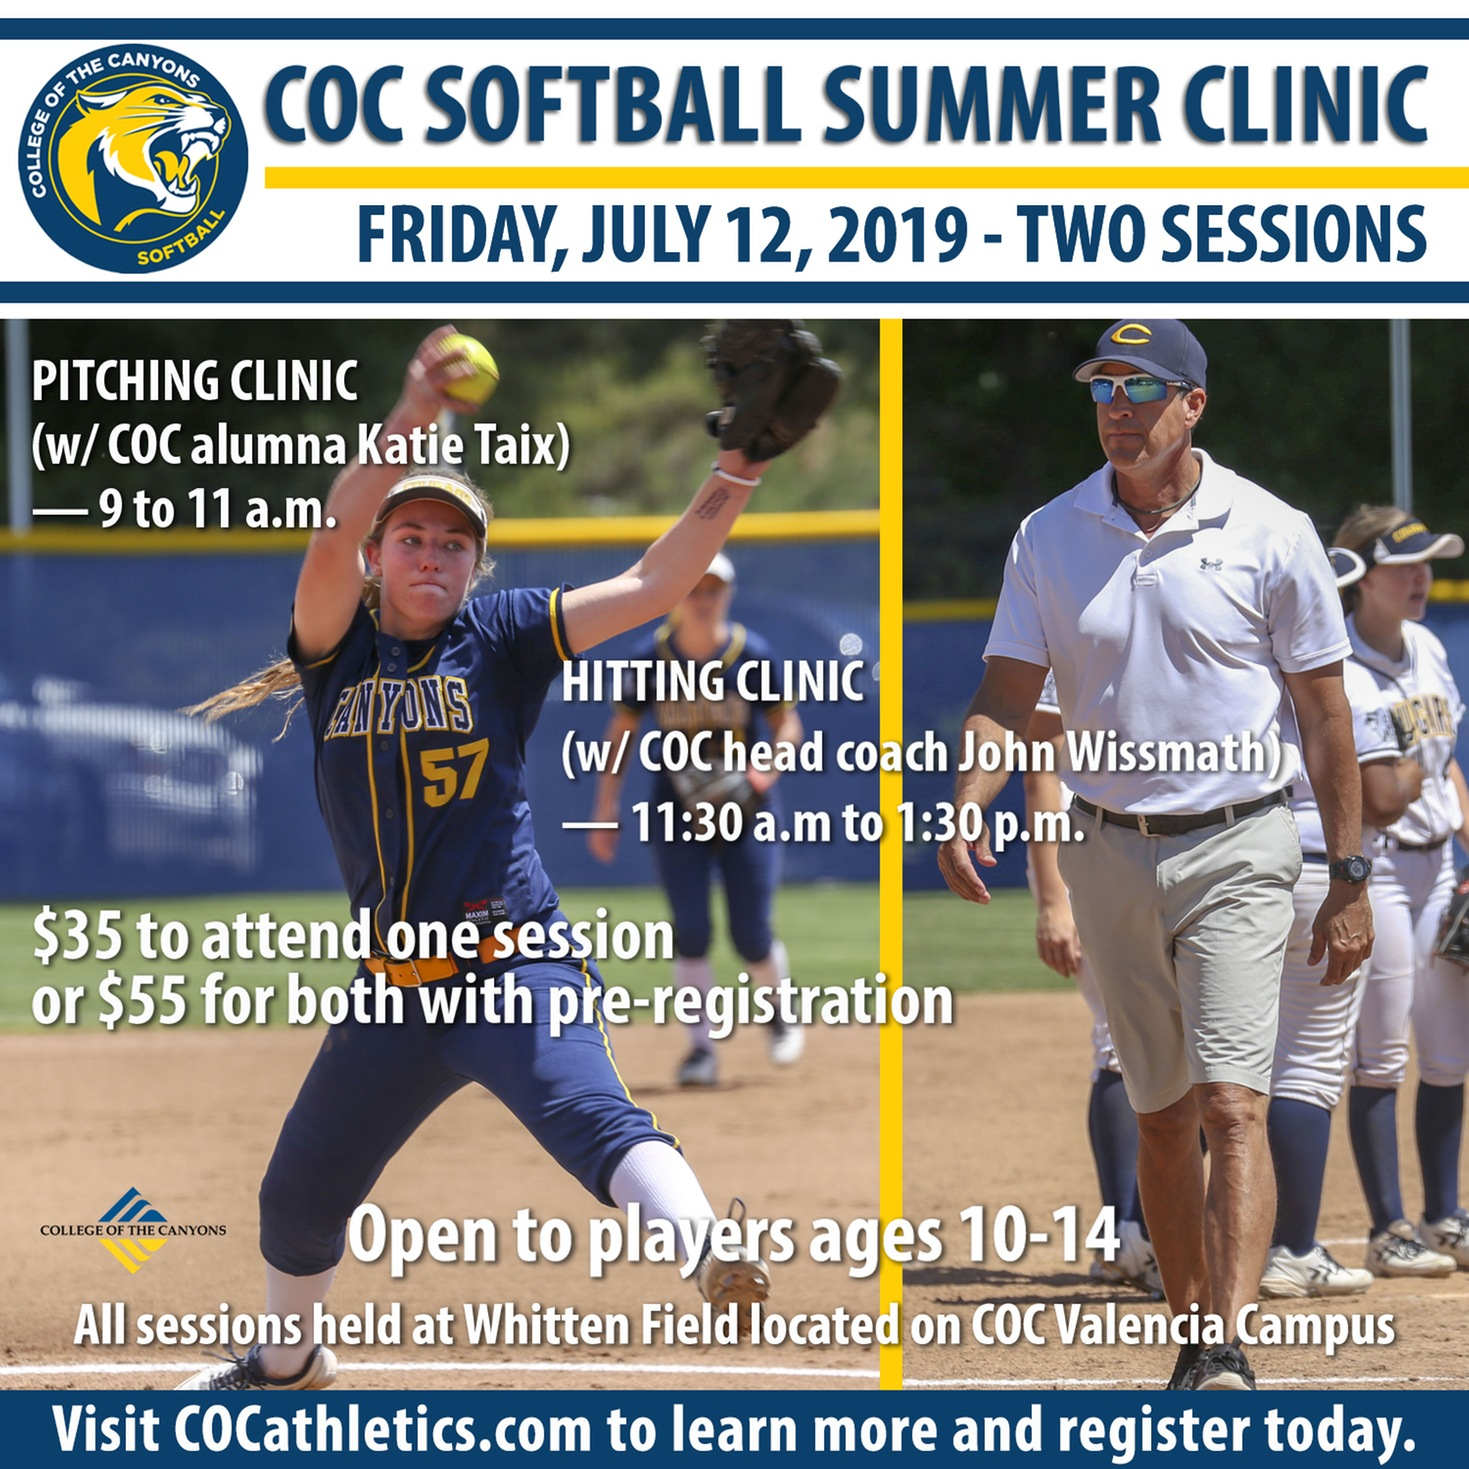 COC softball 2019 summer clinic infographic